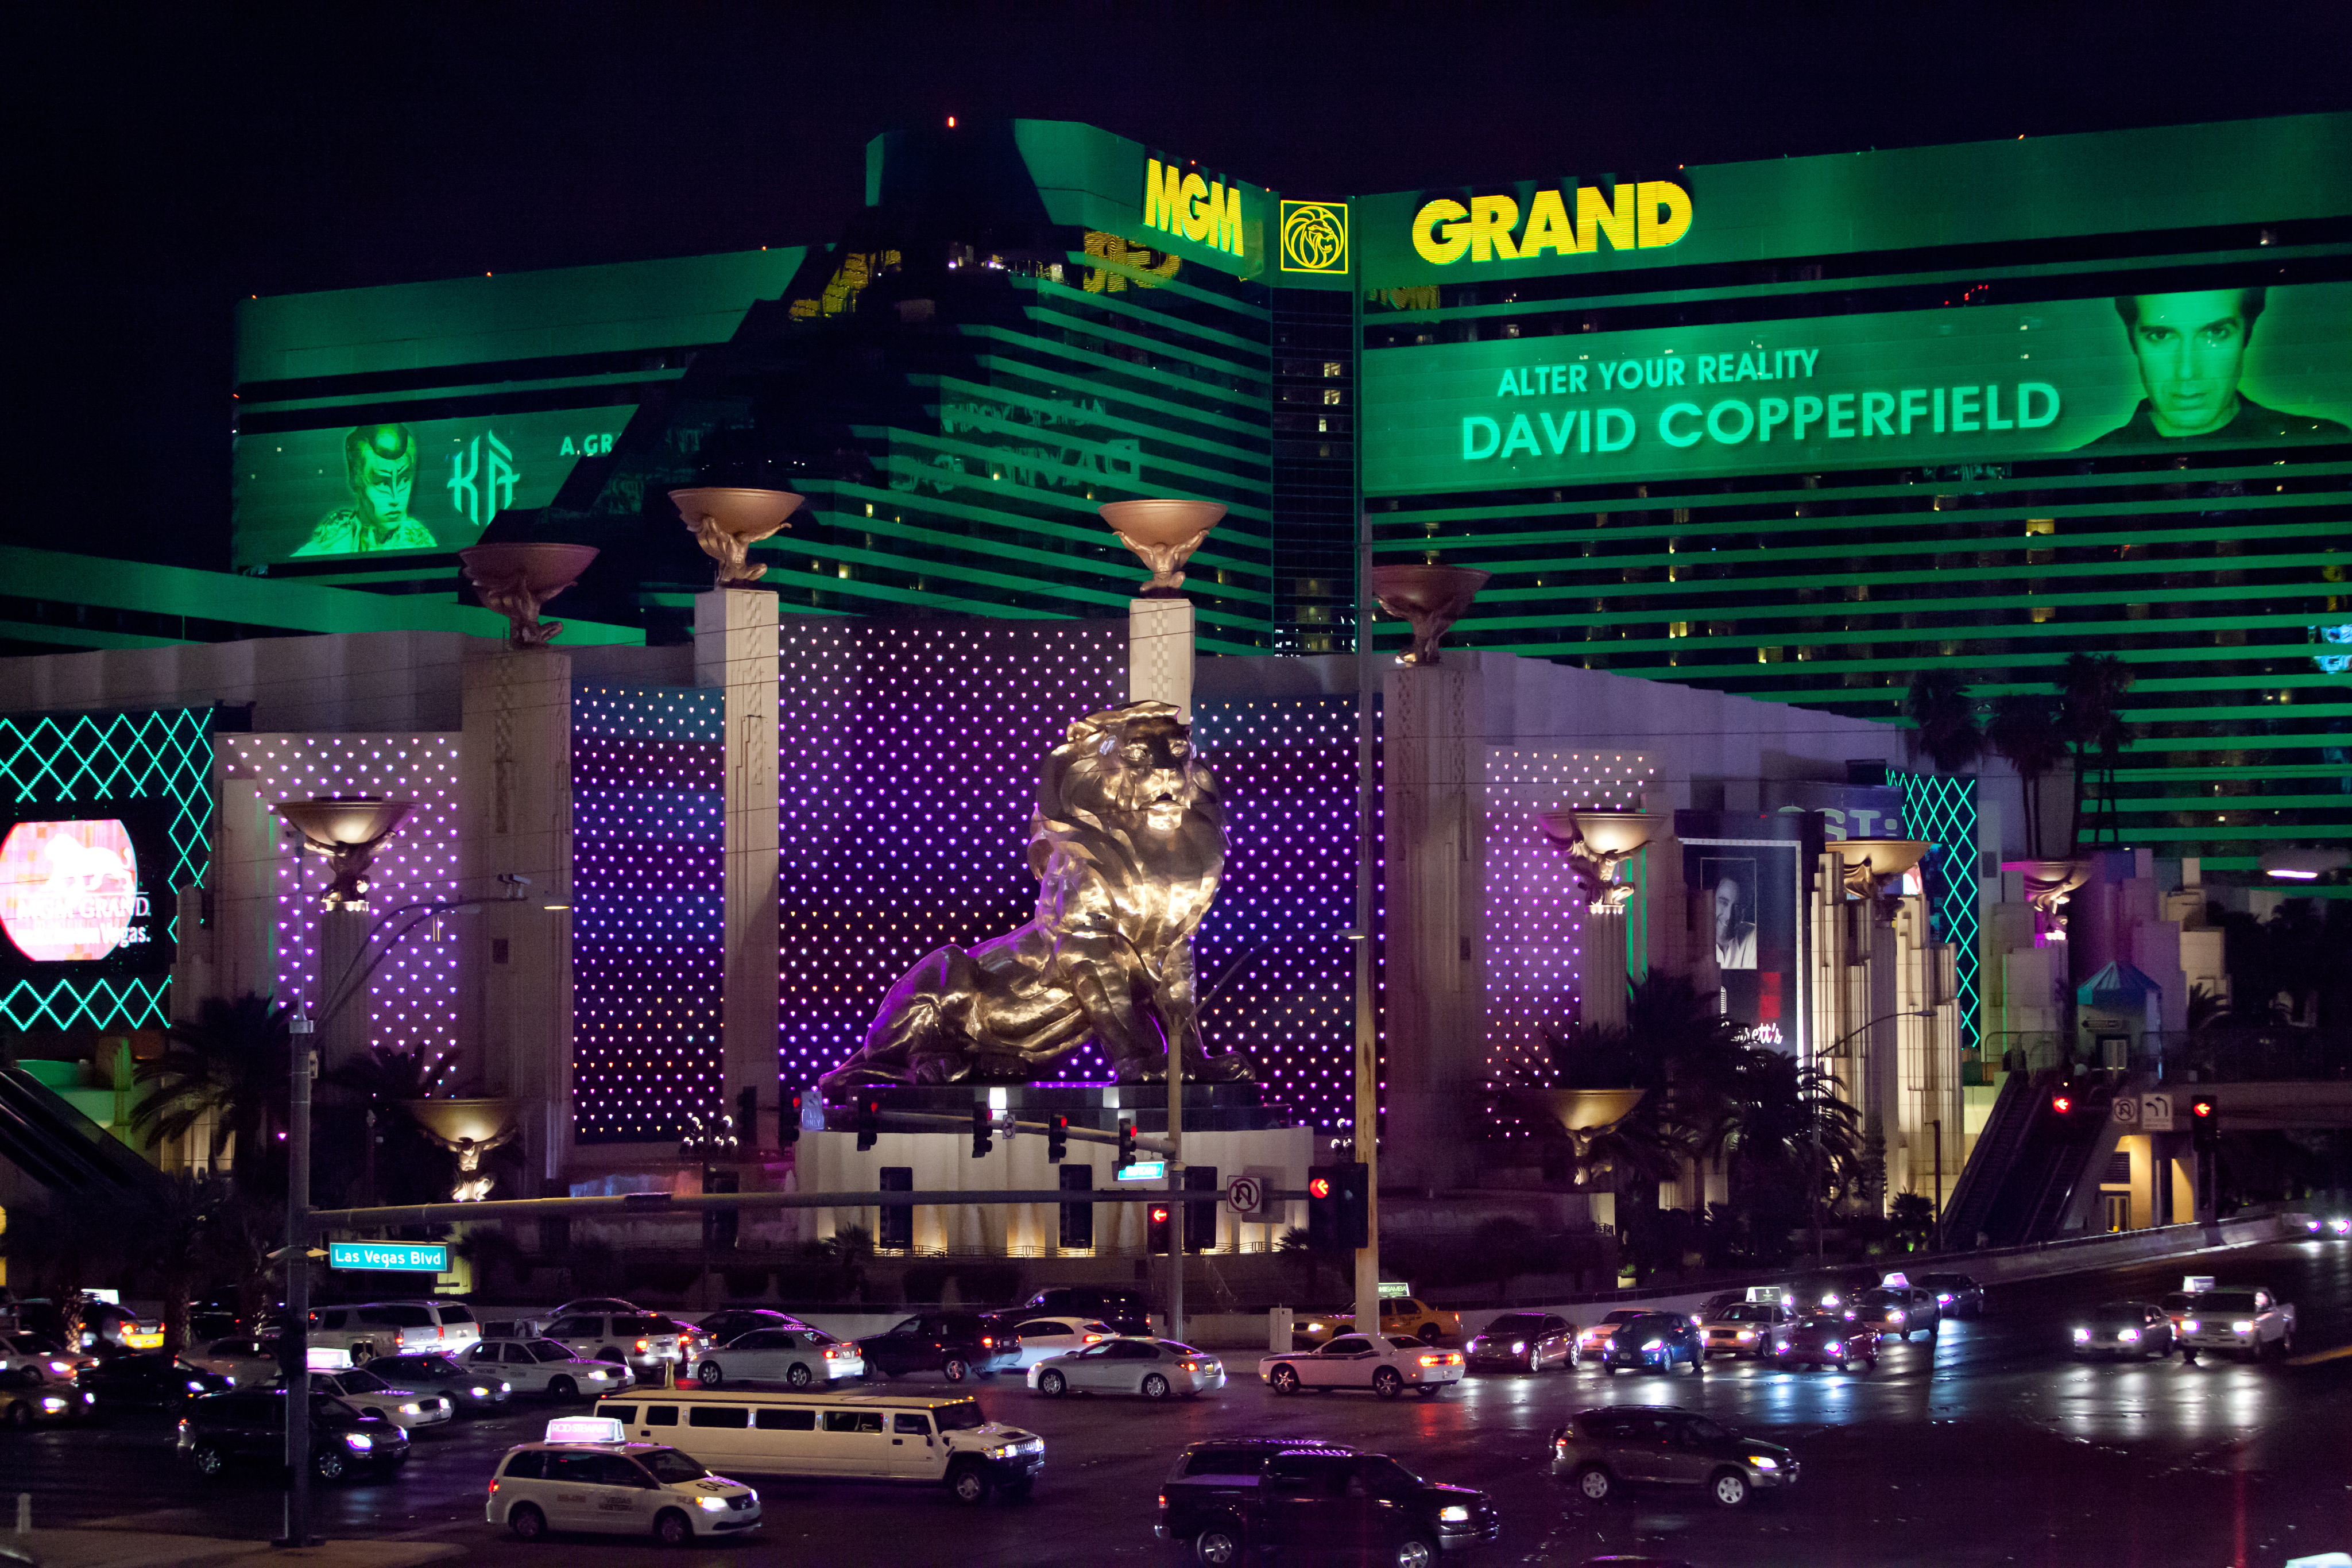 Las Vegas' MGM Grand is now off the table. Credit: PA